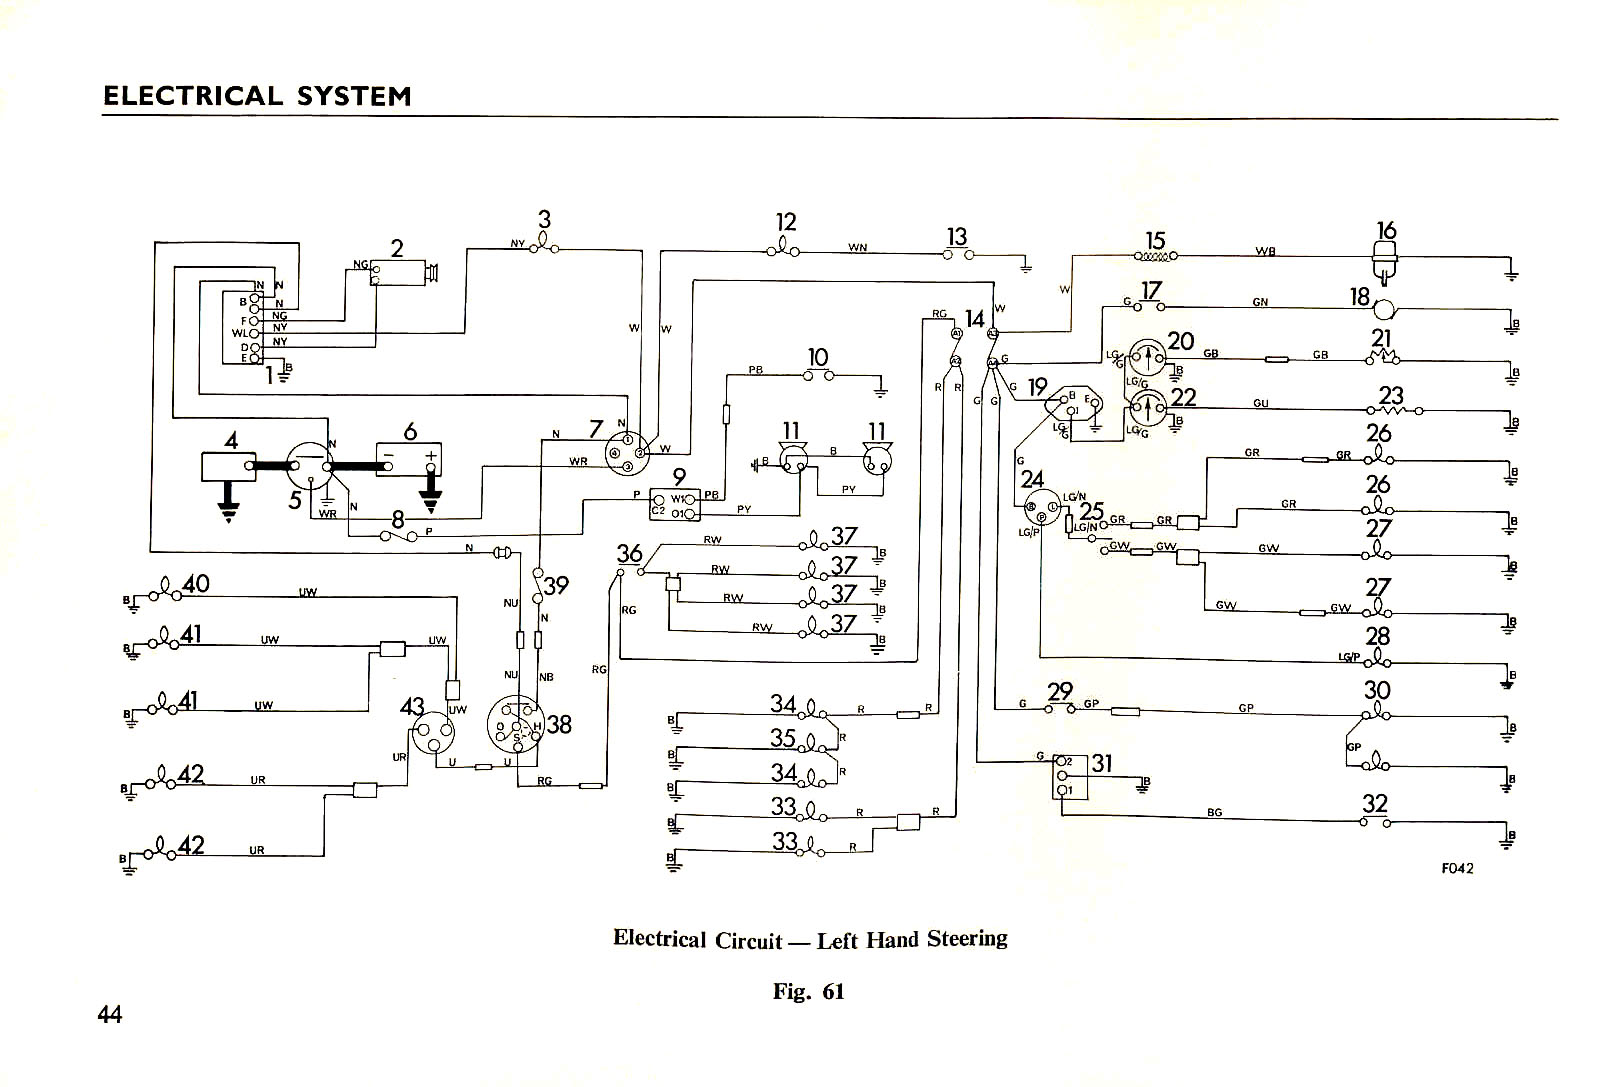 Triumph Tr3 Wiring - Simple Wiring Diagram Site on porsche 914 wiring, triumph gt6 alternator wiring, jeep cherokee wiring, triumph spitfire wiring, triumph stag wiring, triumph tr4 wiring, mg midget wiring, triumph tr6 wiring, ford mustang wiring, ford pinto wiring, dodge dakota wiring, triumph scrambler wiring, triumph tr25 wiring, tr6 dashboard wiring,